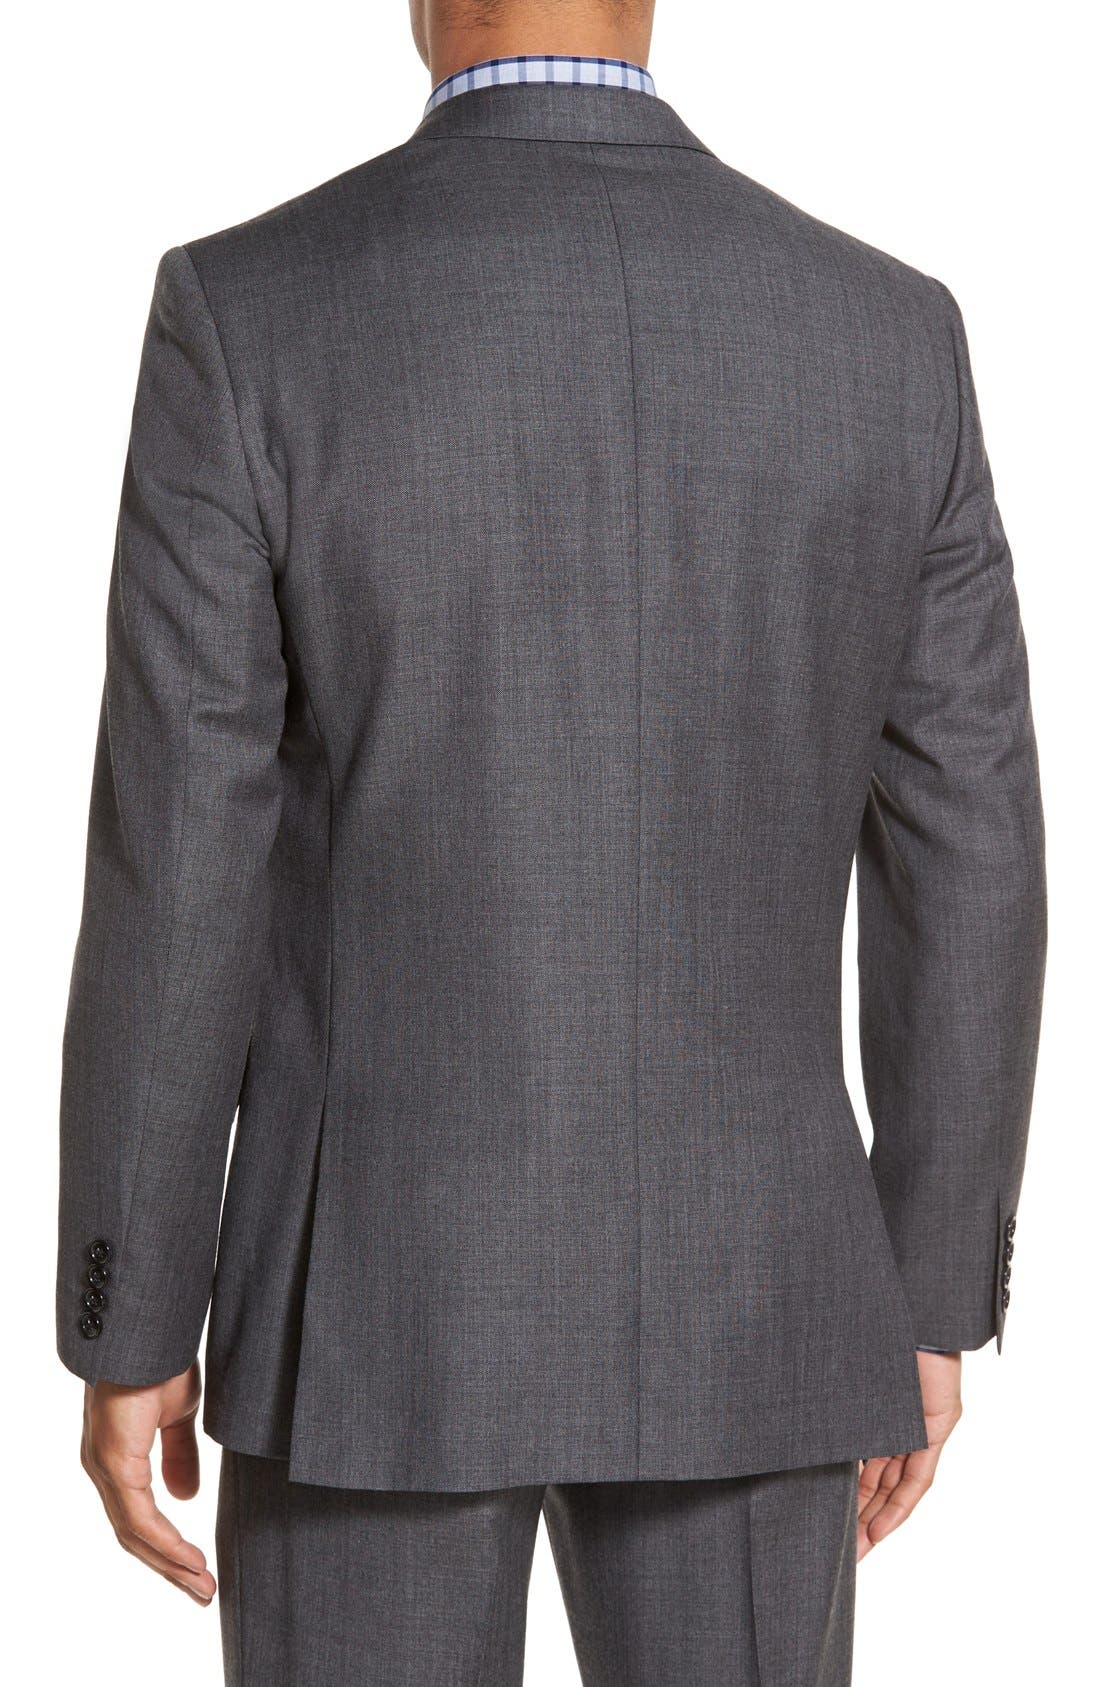 Ludlow Trim Fit Solid Wool Sport Coat,                             Alternate thumbnail 5, color,                             020